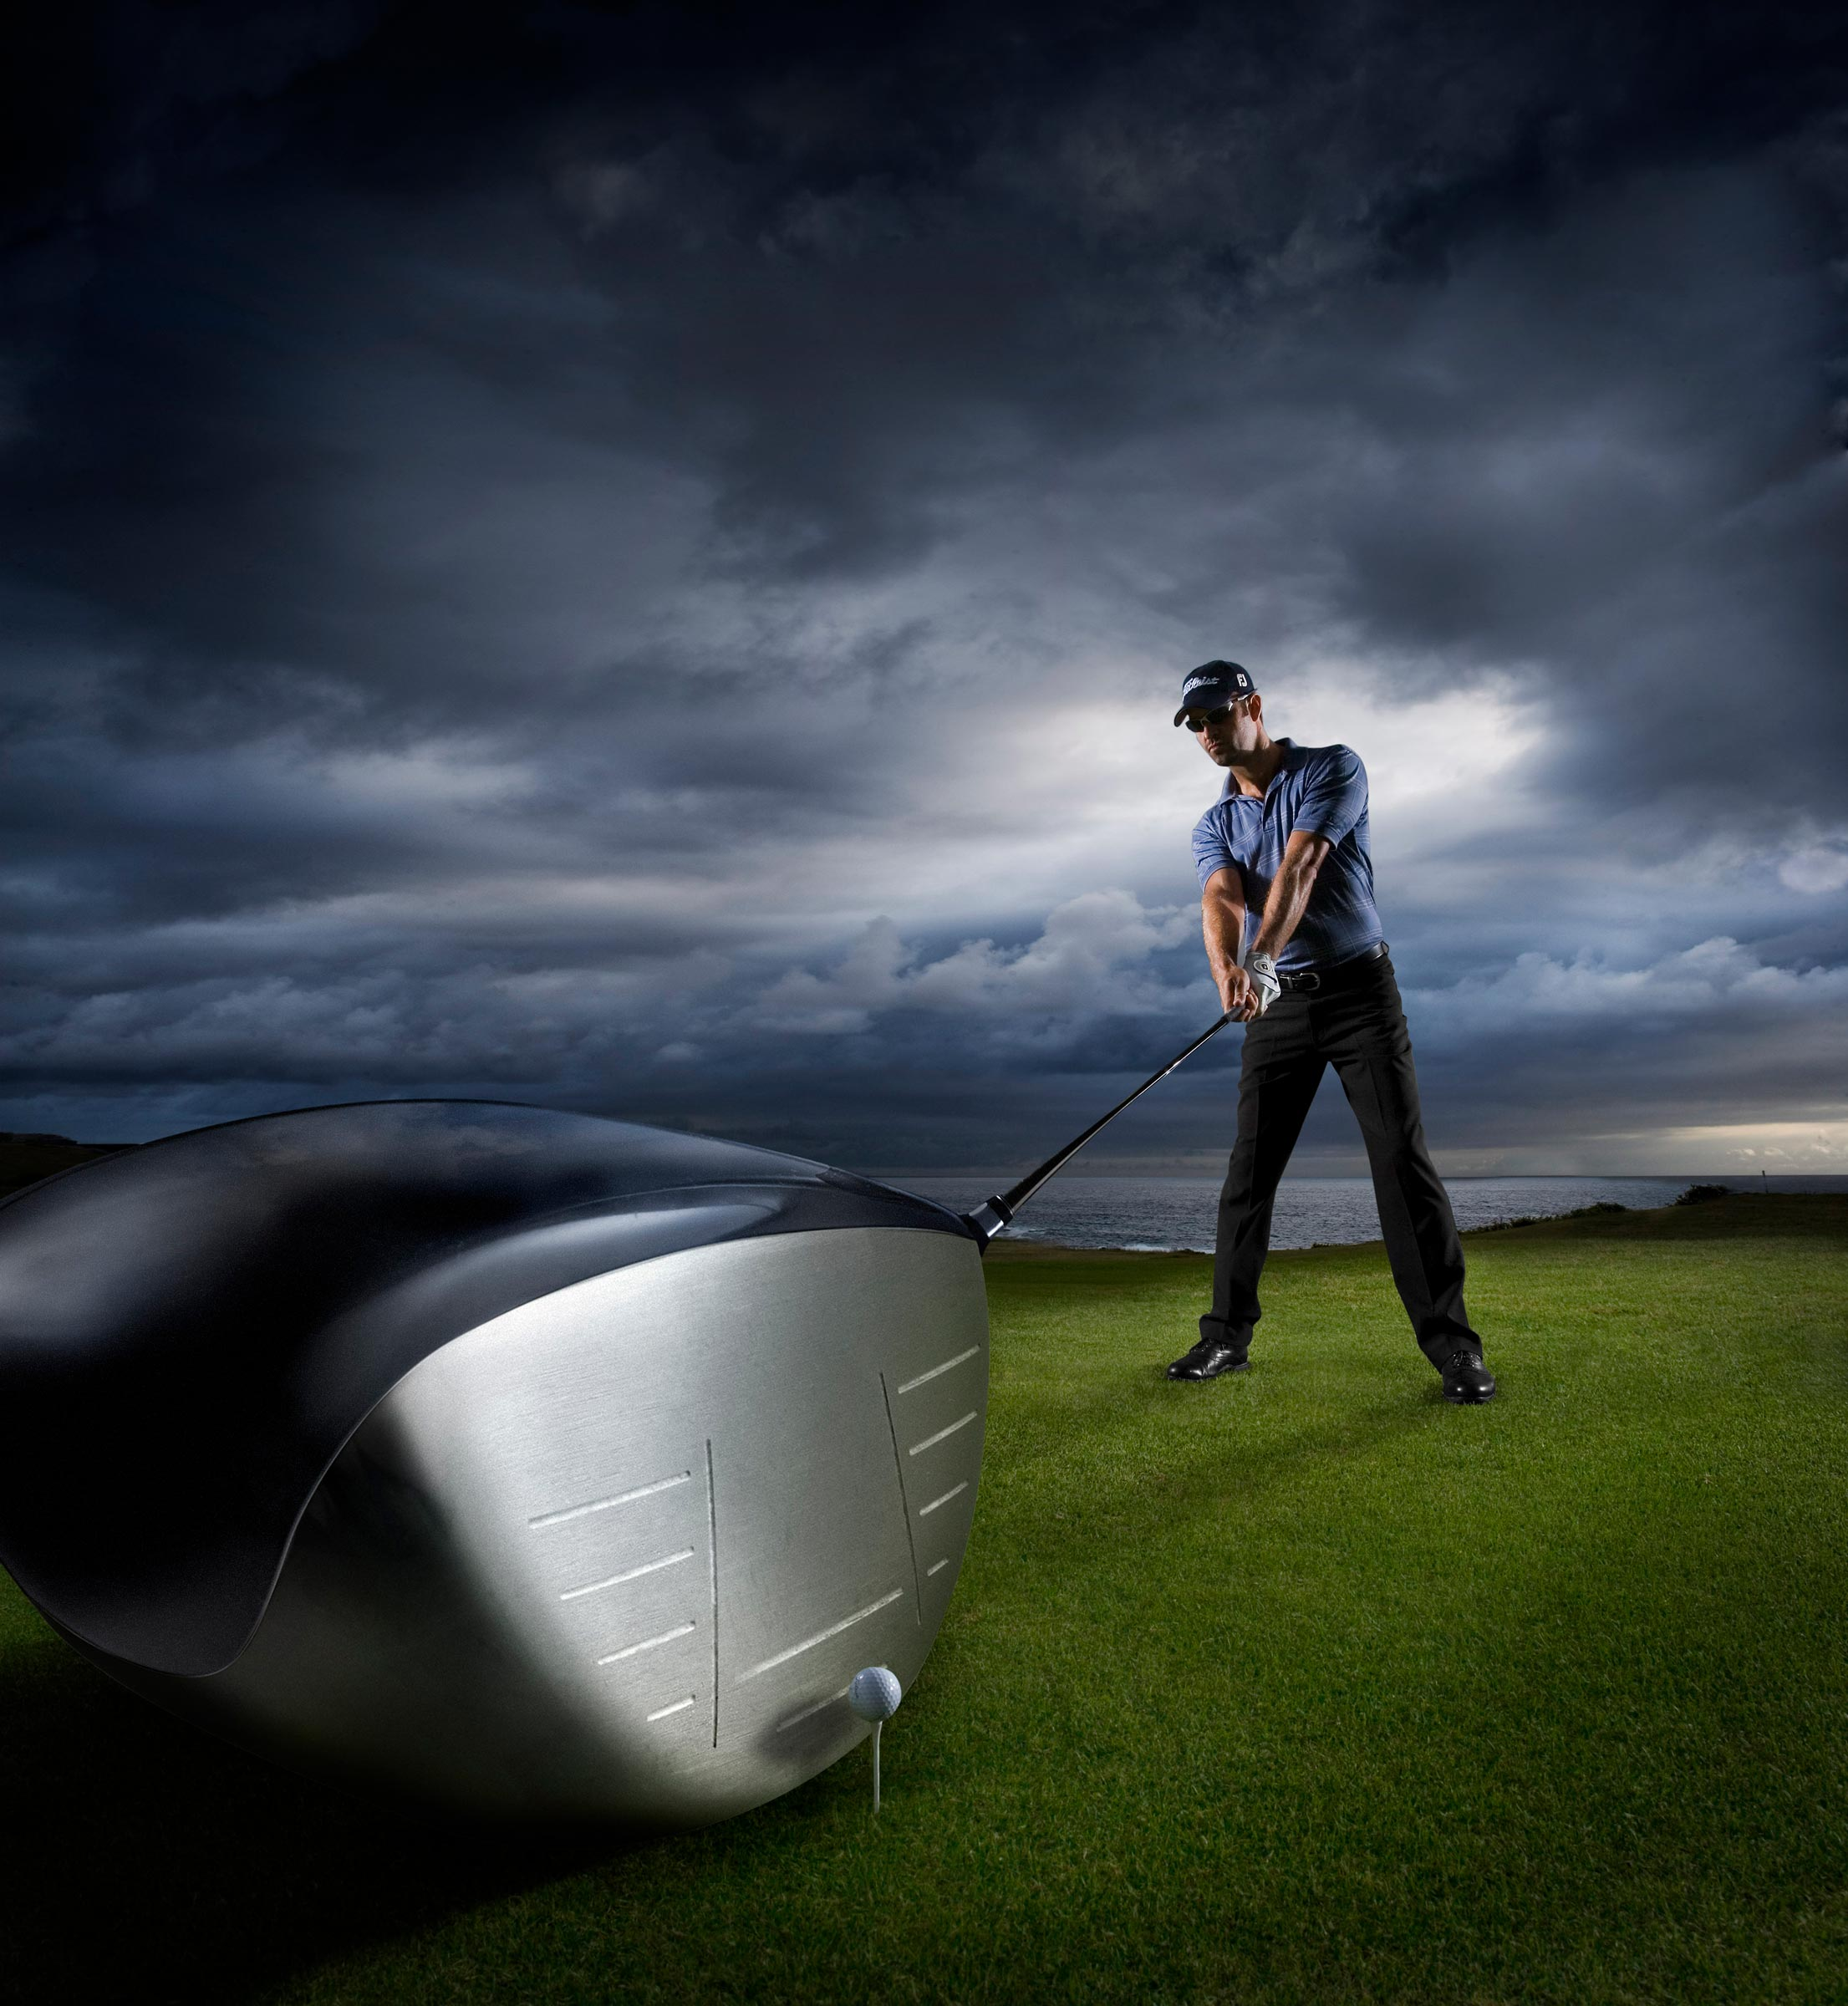 golfer teeing up with storm clouds behind